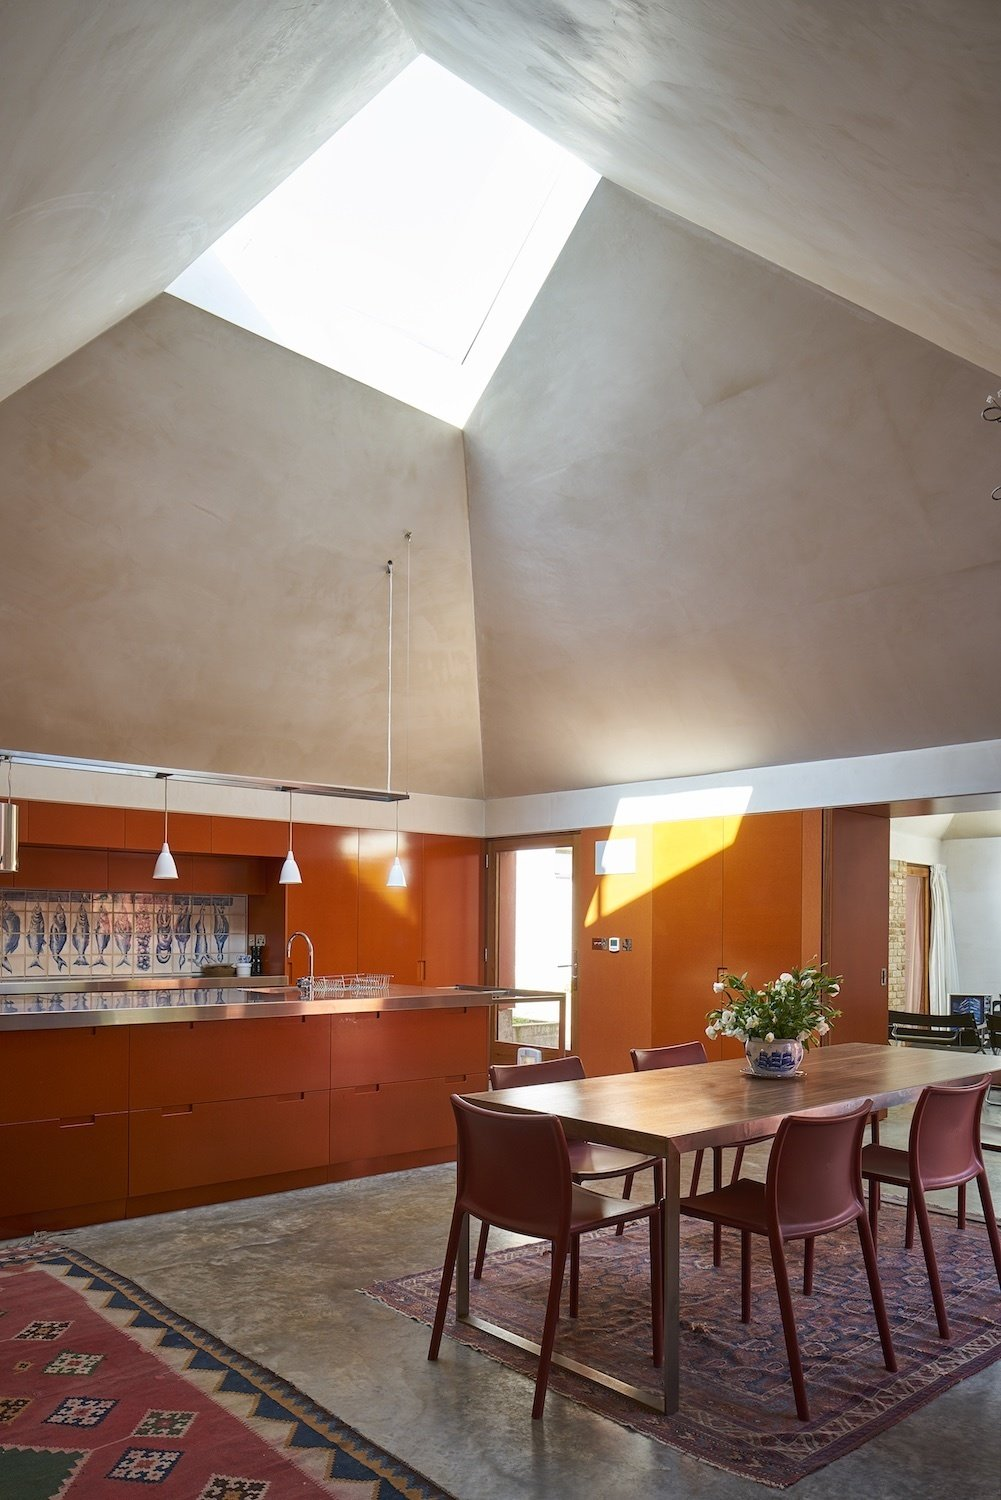 Tagged: Concrete Floor, Pendant Lighting, and Dining Room. Red Tin House That Makes the Most of Space and Light - Photo 3 of 10